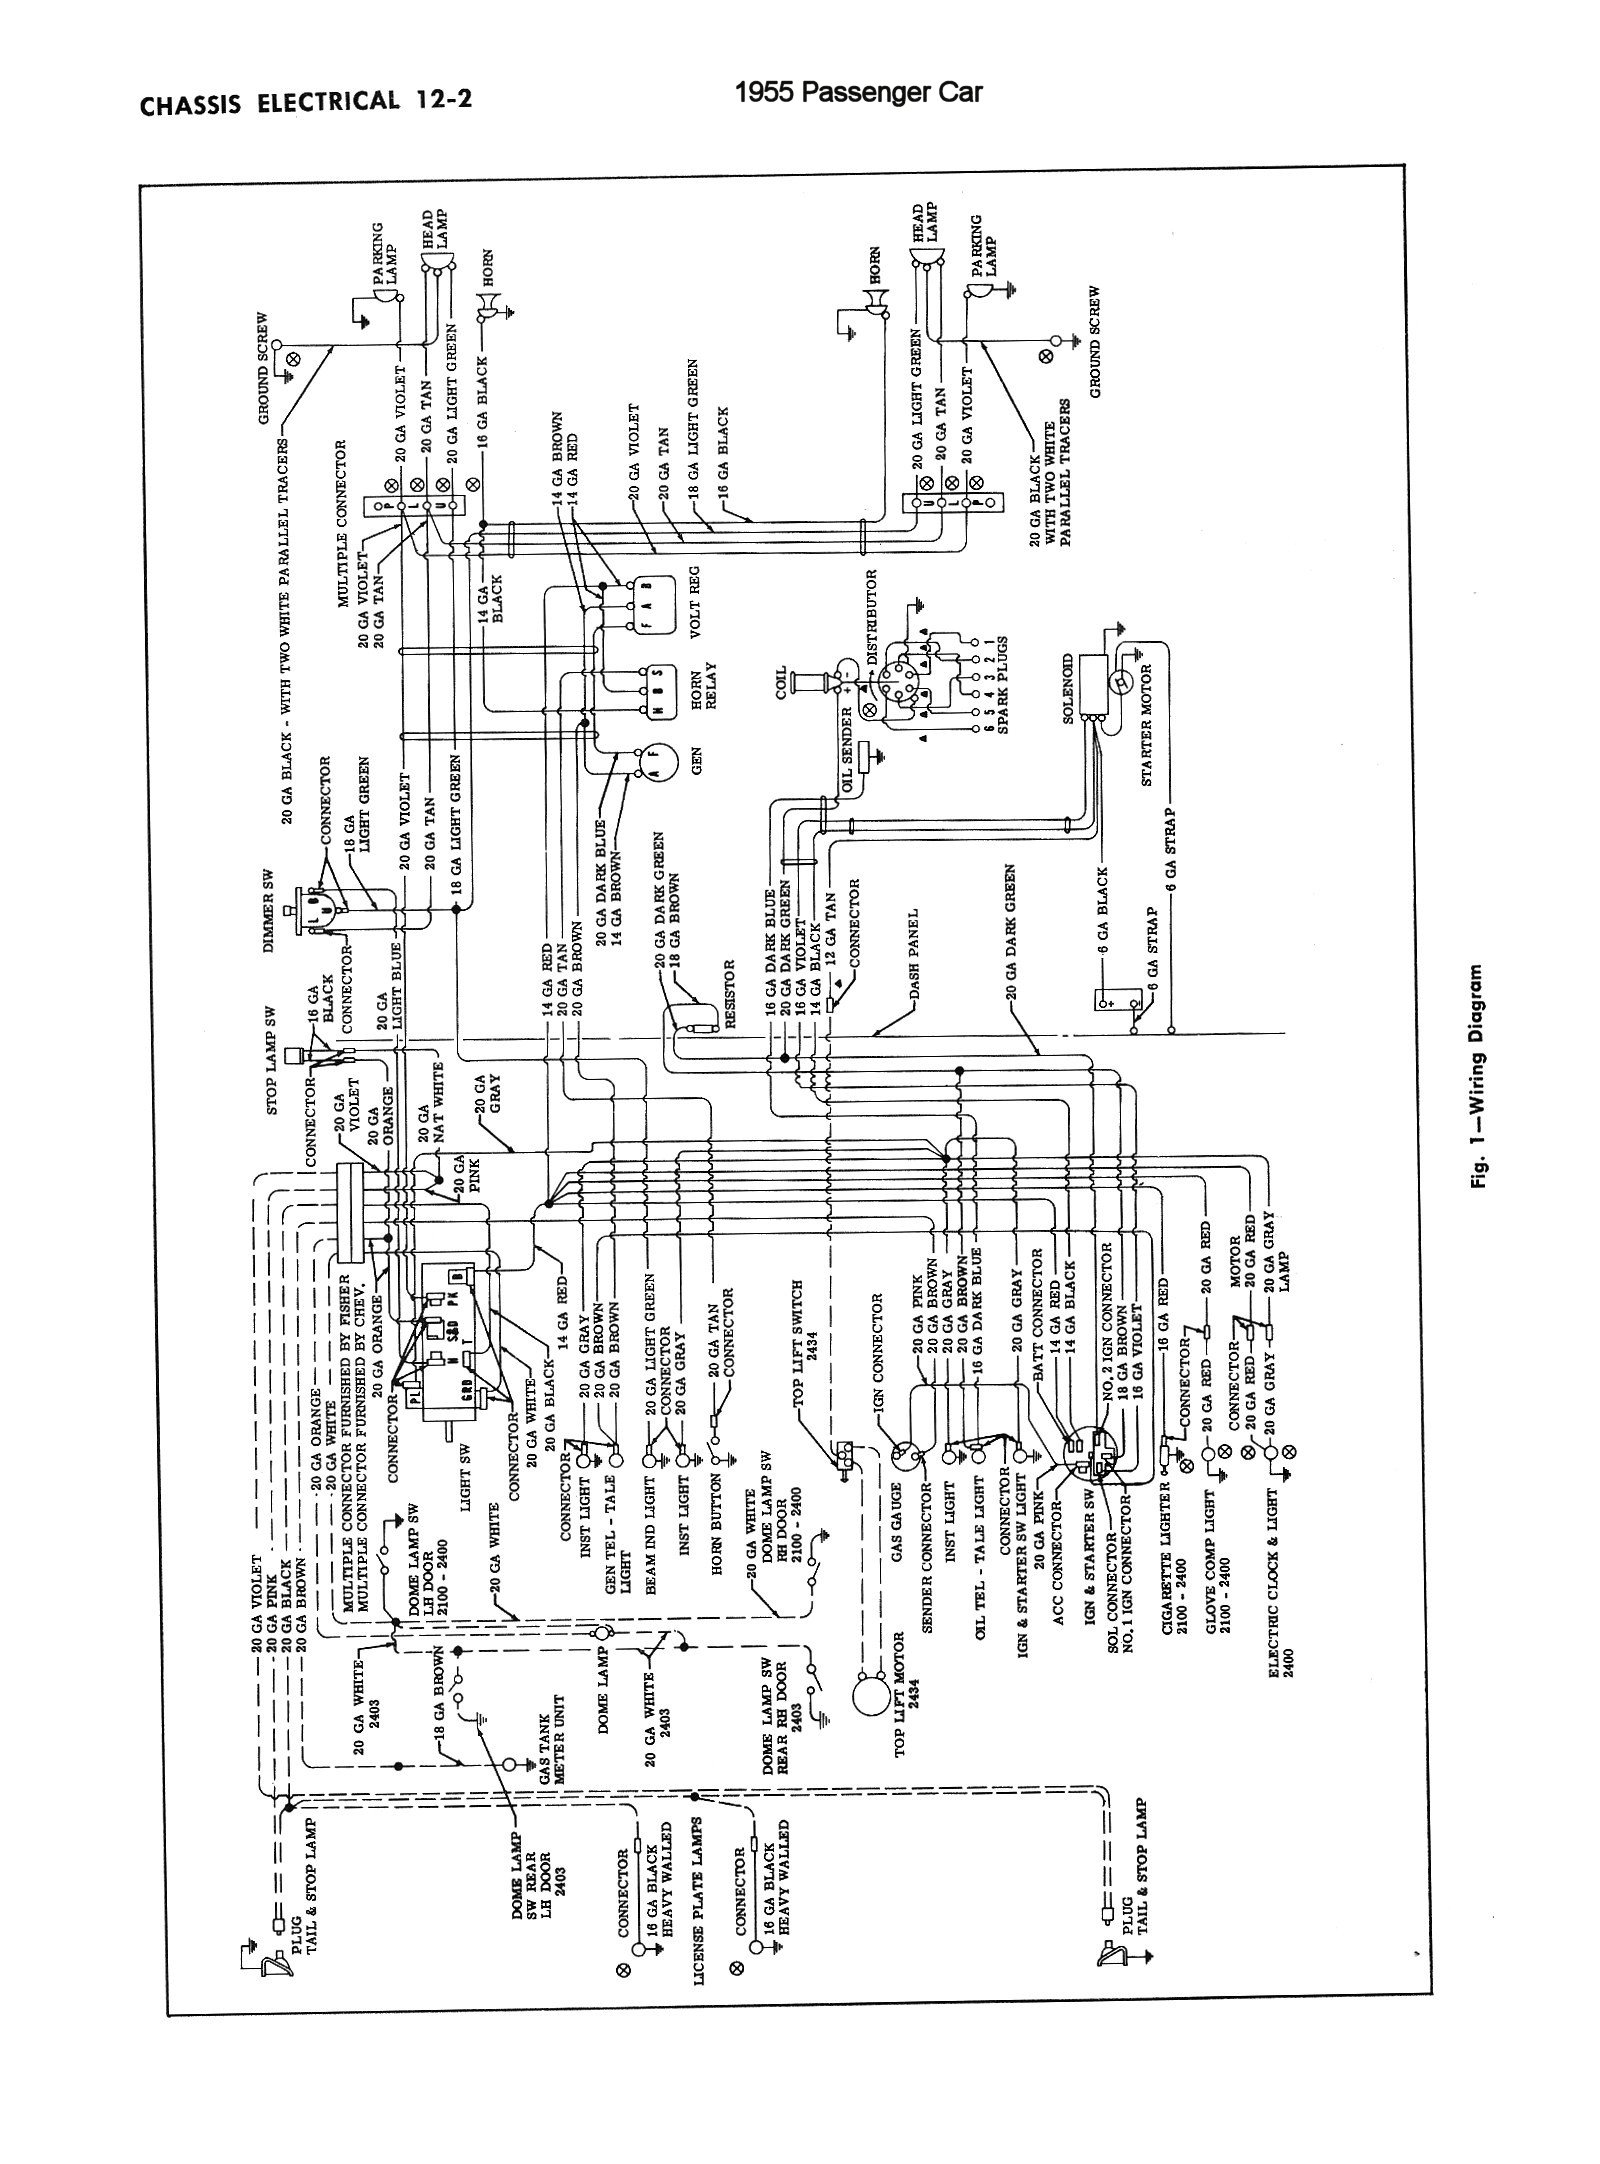 Chevy Wiring Diagrams Site 1955 Car Chassis Electrical